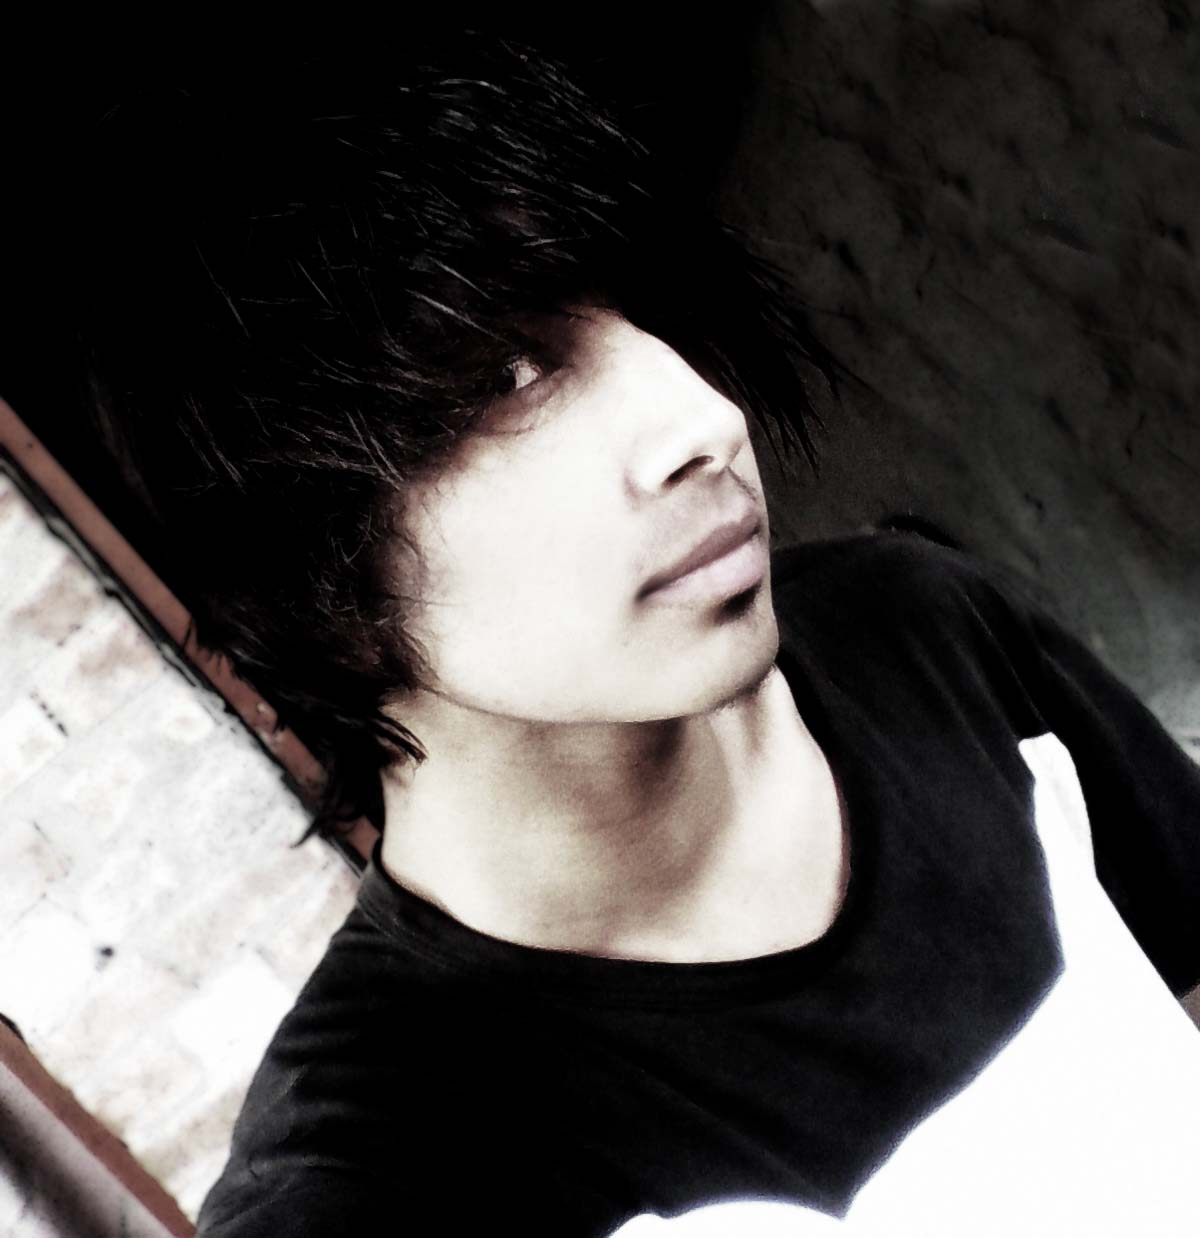 Emo Scene Hairstyles Images Emo Hairs Style Shahbaz Qureshi Hd